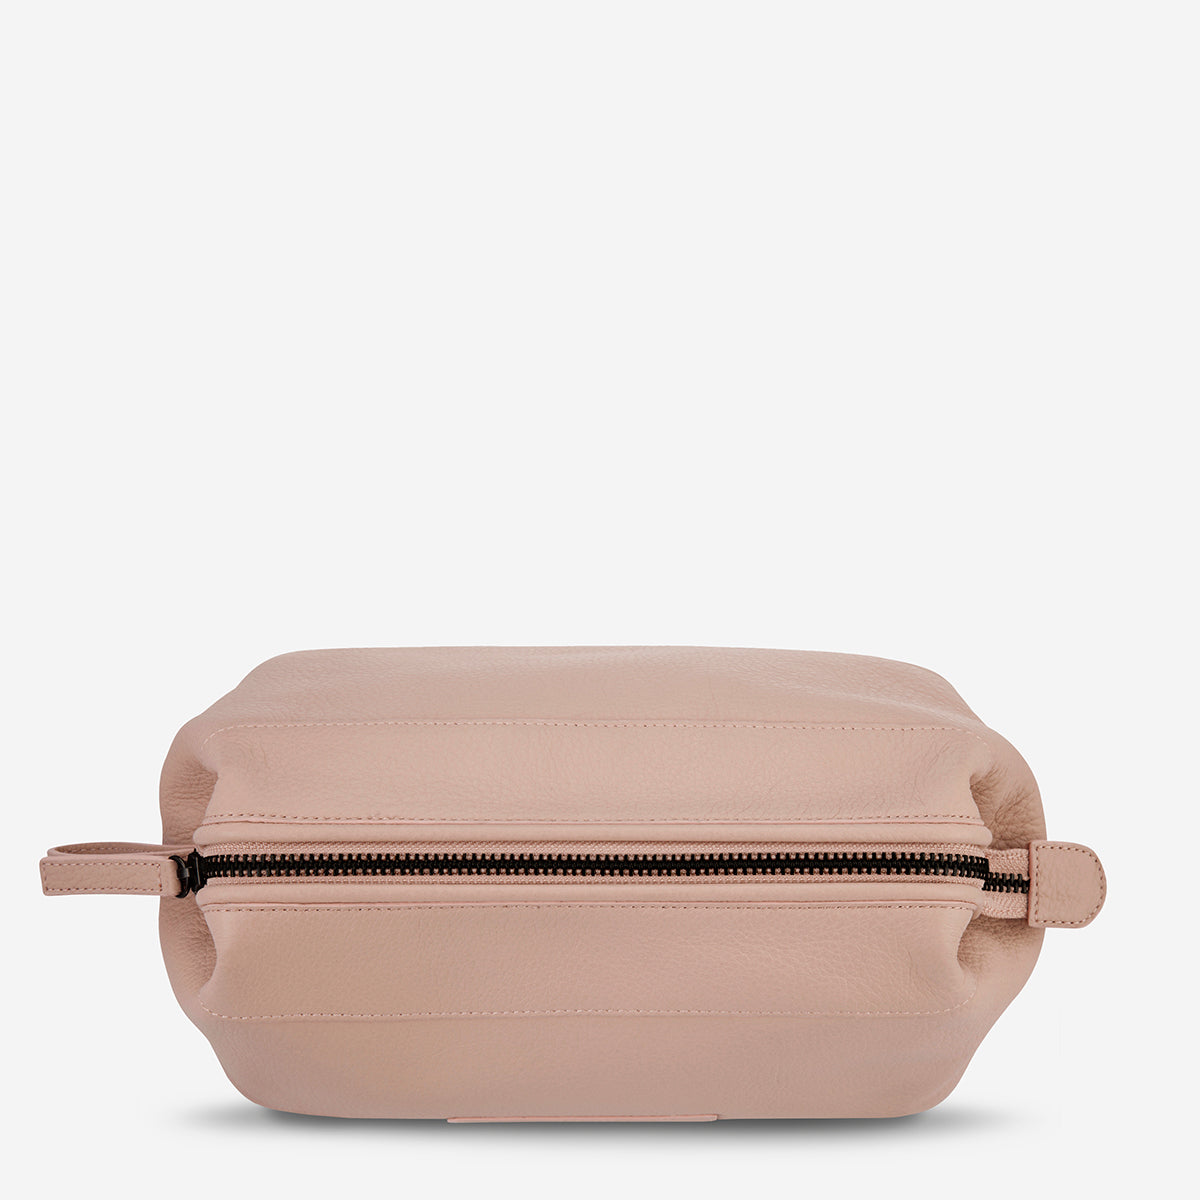 Status Anxiety Liability Leather Toiletries Bag - Dusty Pink